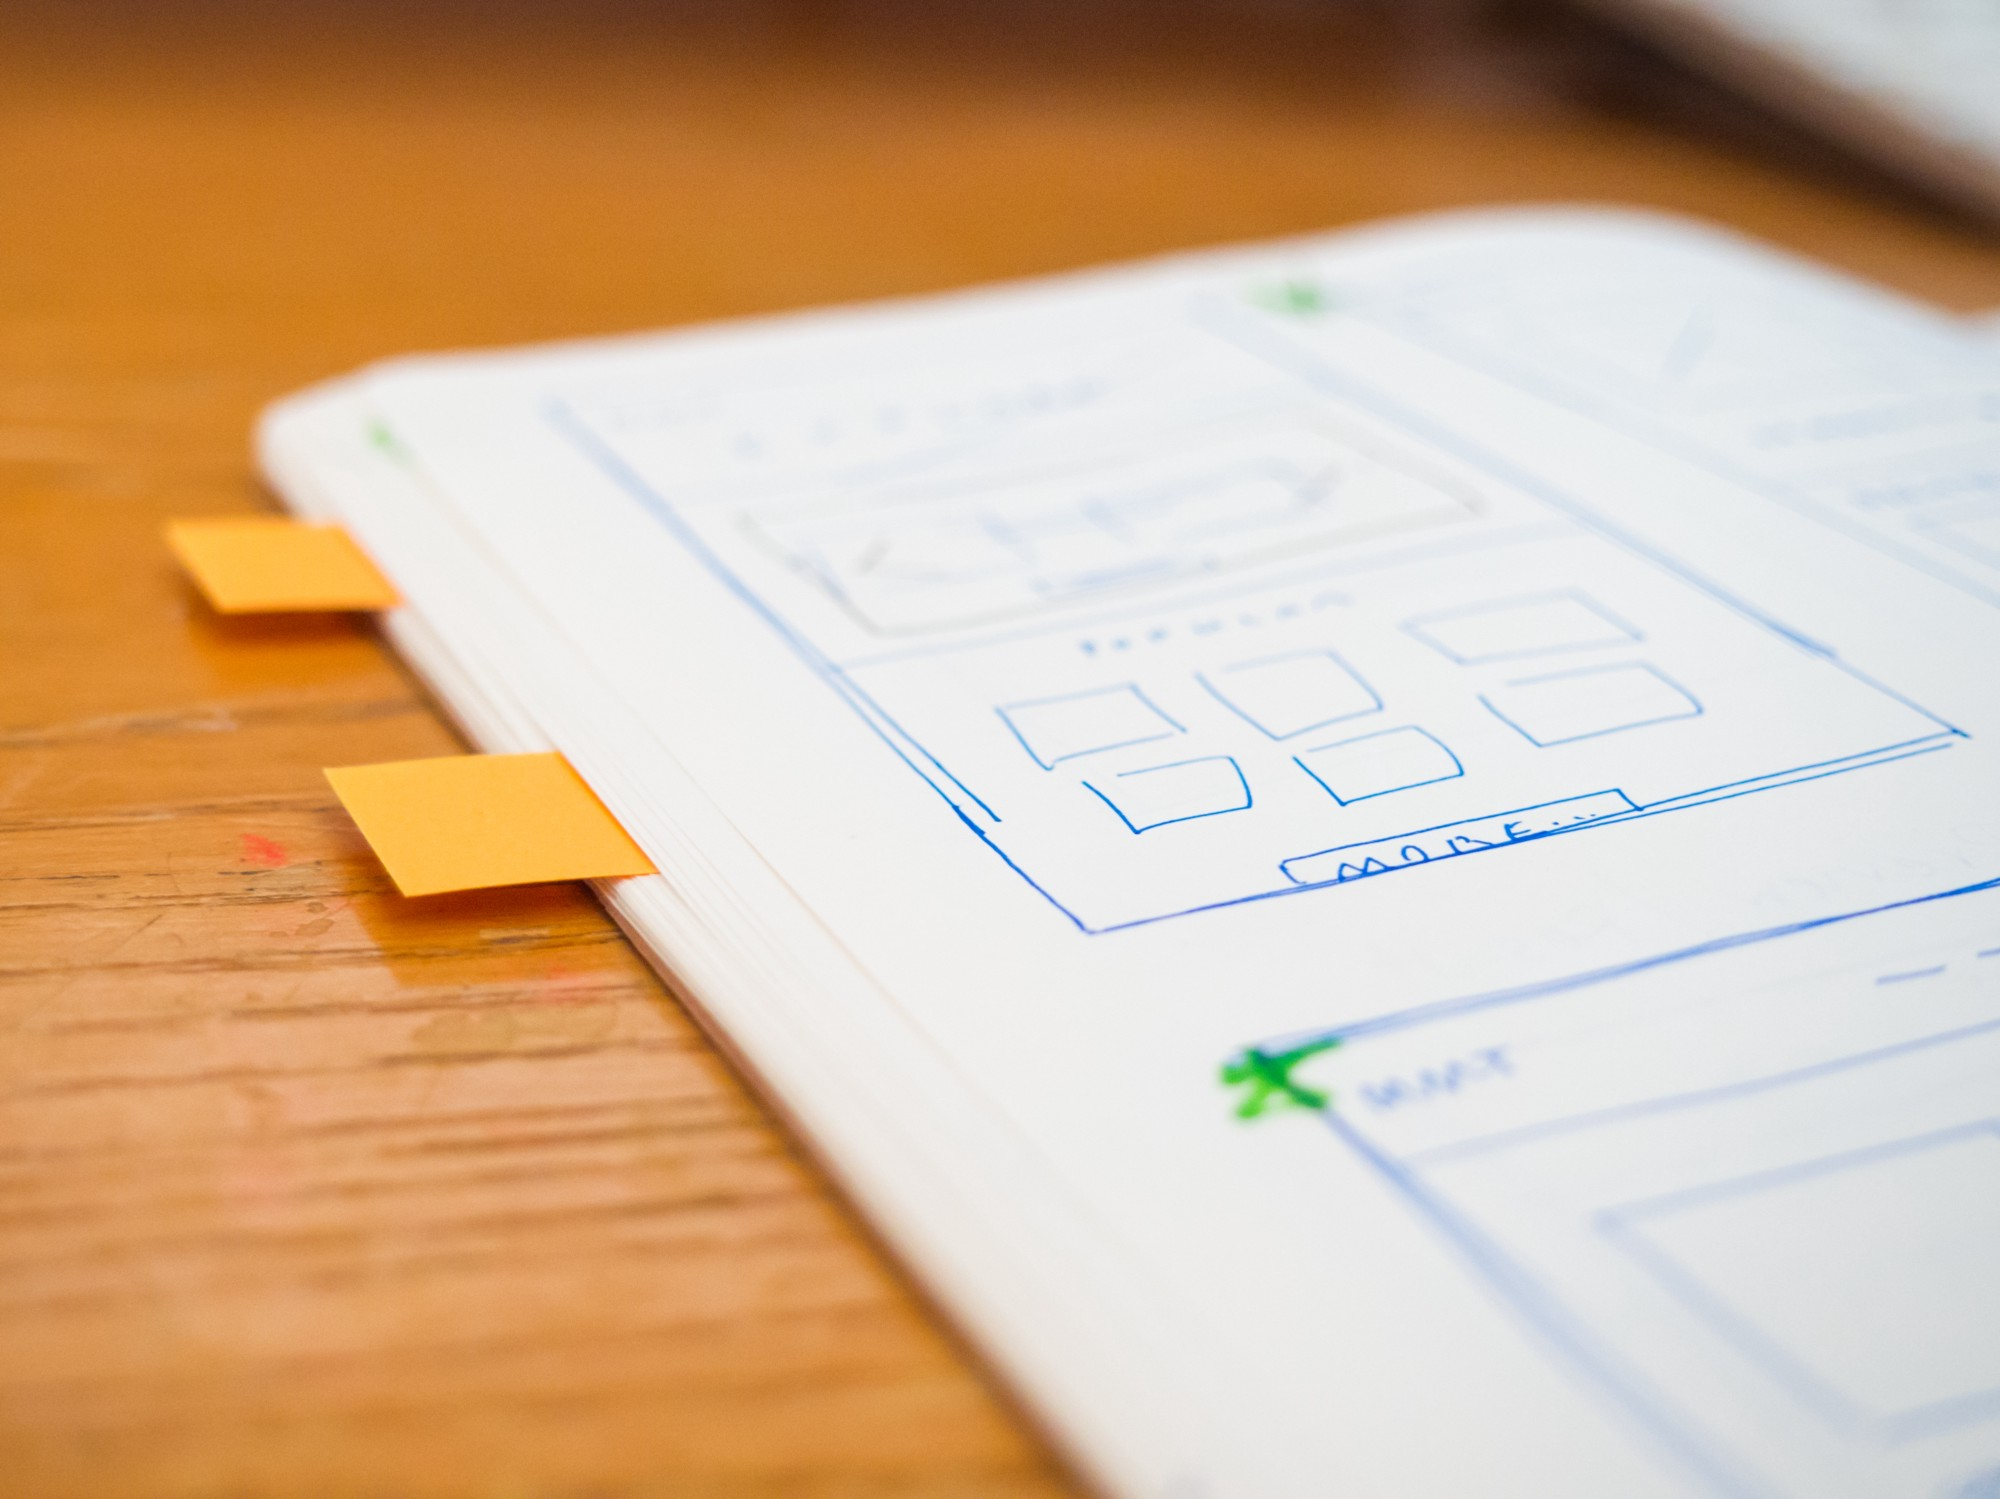 Couple Design Thinking & Lean for your MVP